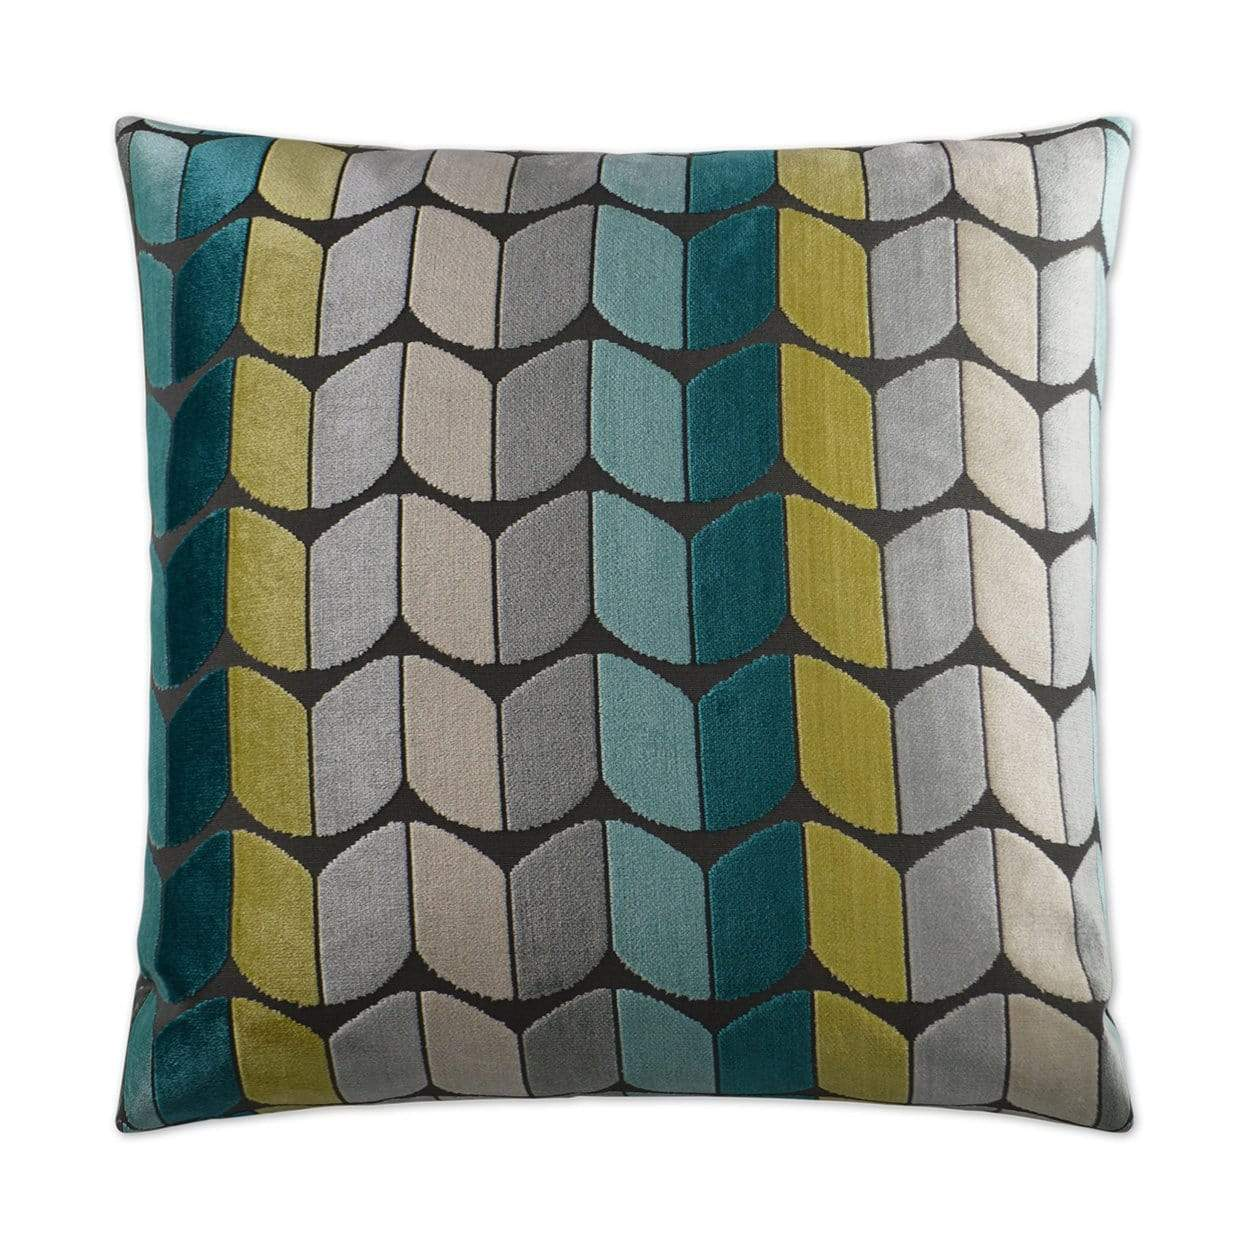 D.V. Kap D.V. Kap Copenhagen Pillow - Available in 4 Colors Indigo 2957-I